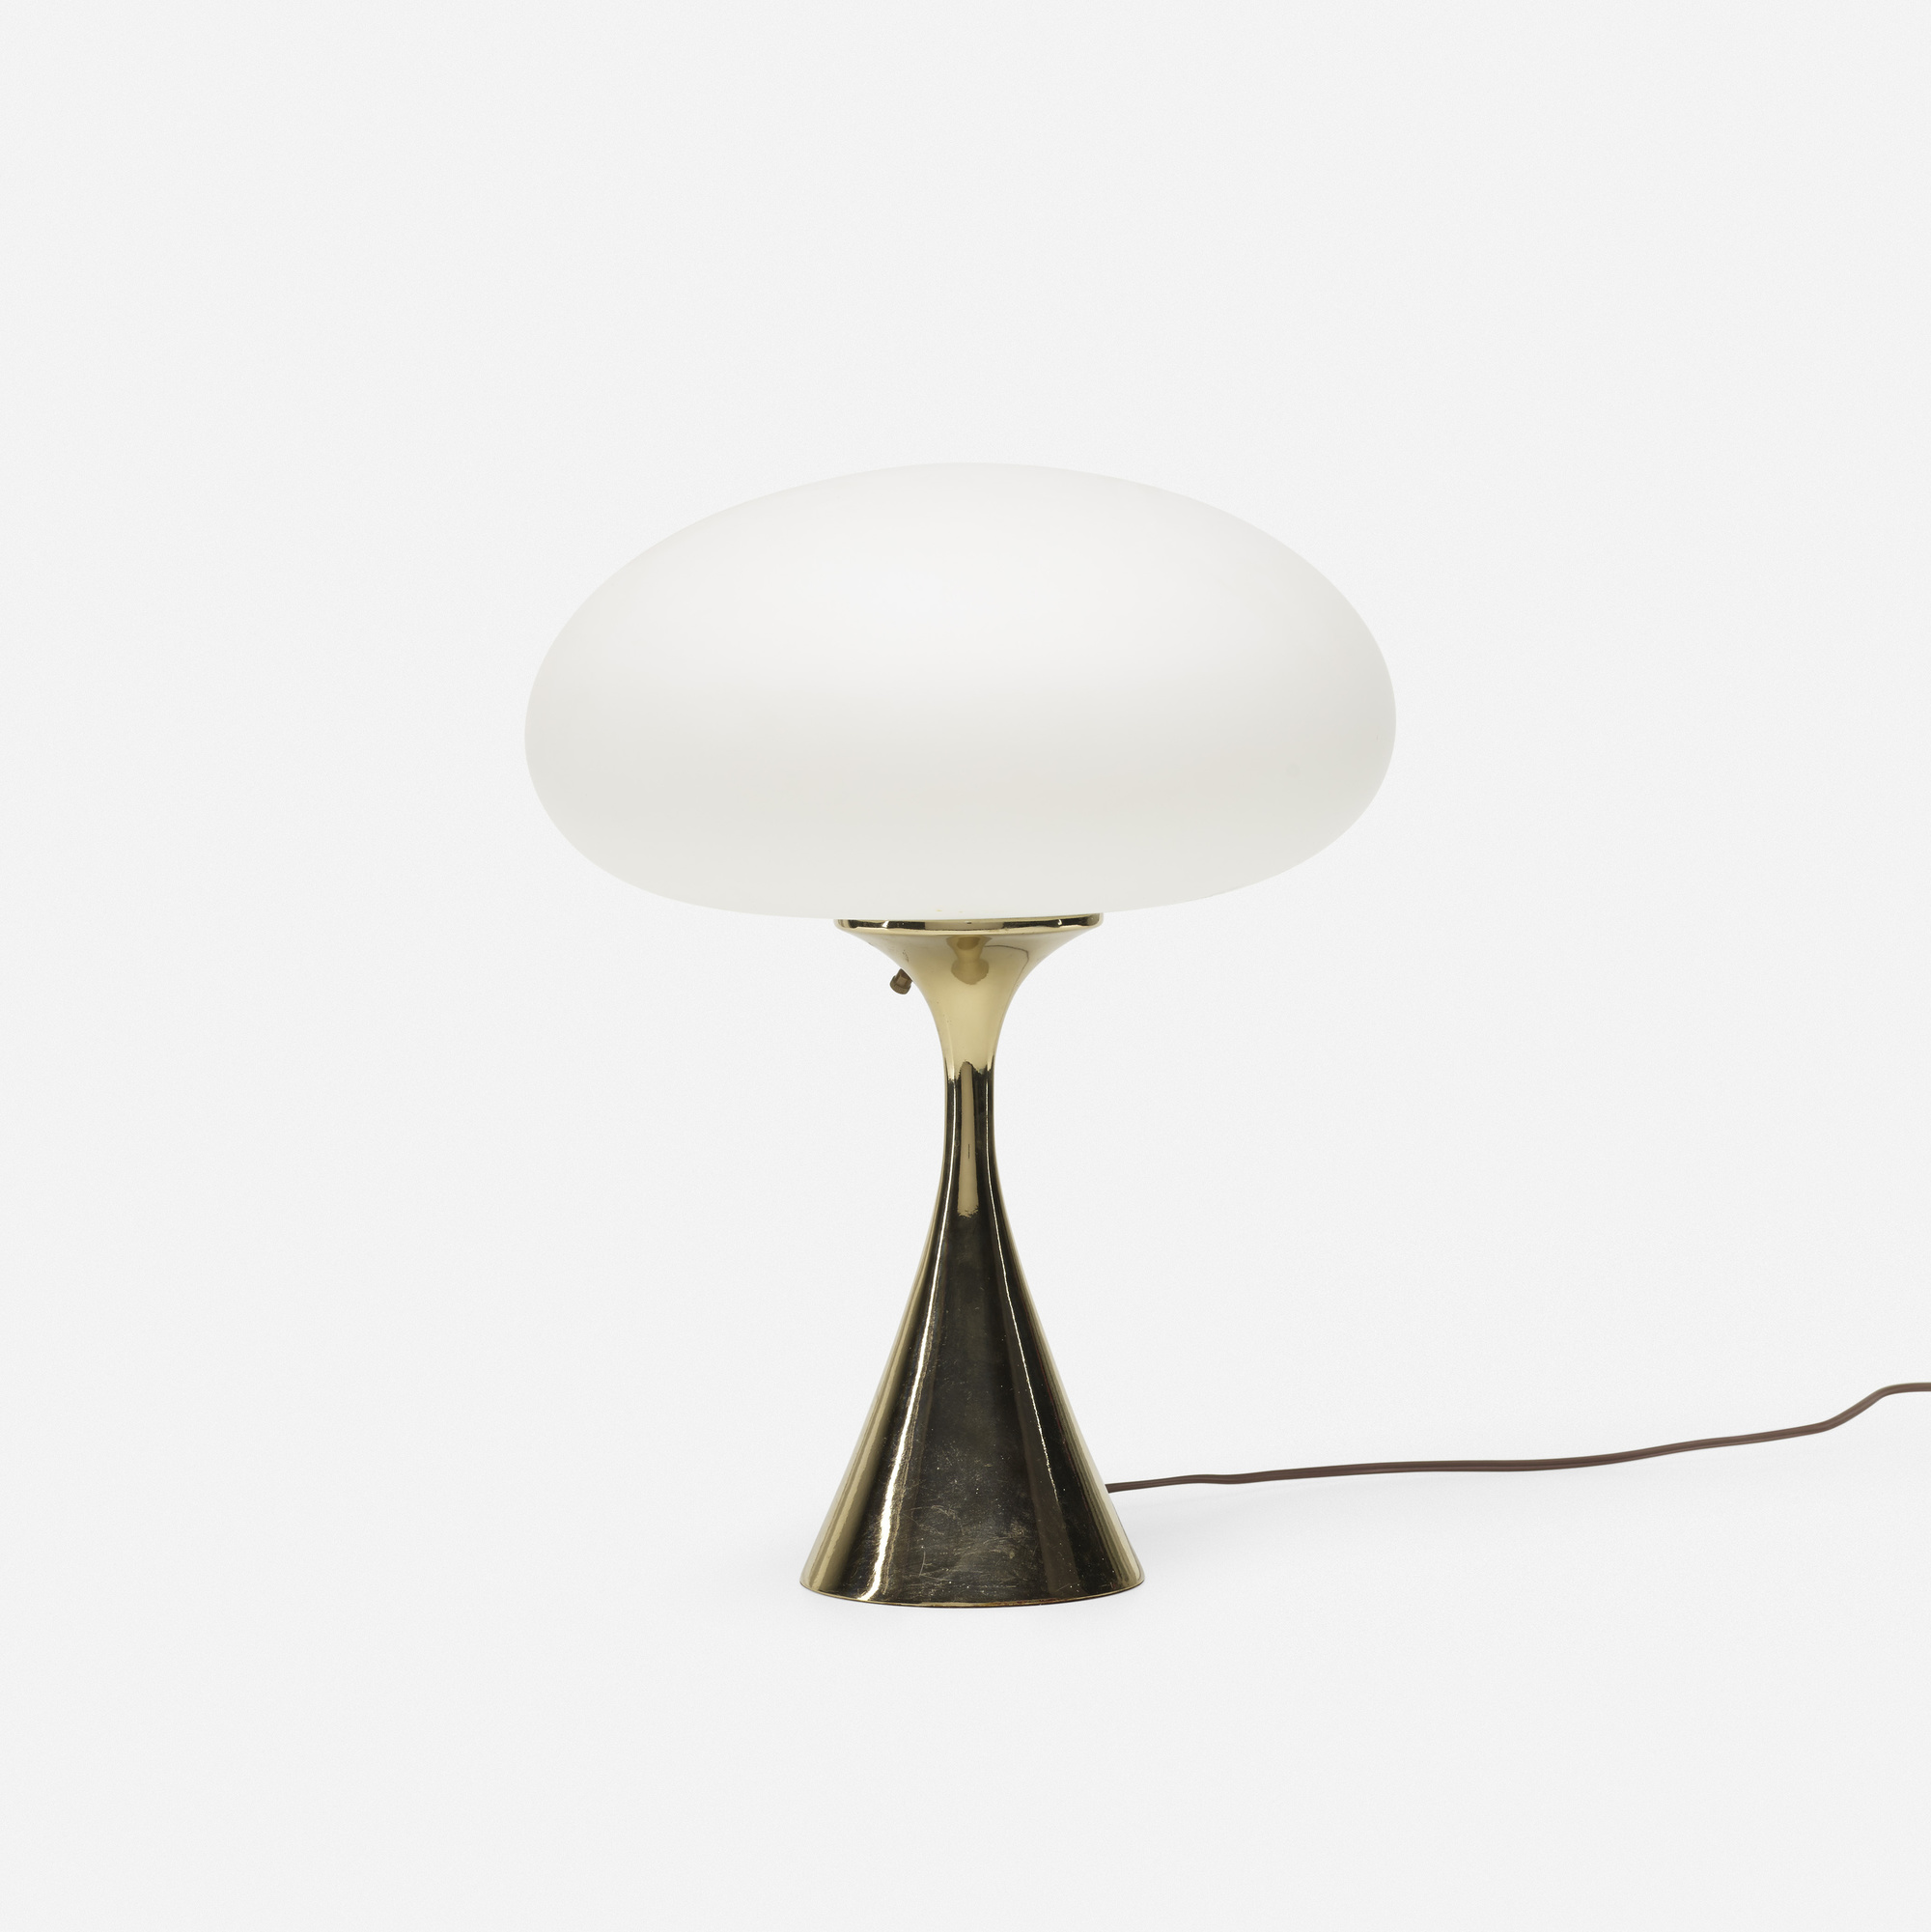 368: Laurel Lamp Co. / Mushroom Table Lamp (1 Of 1)